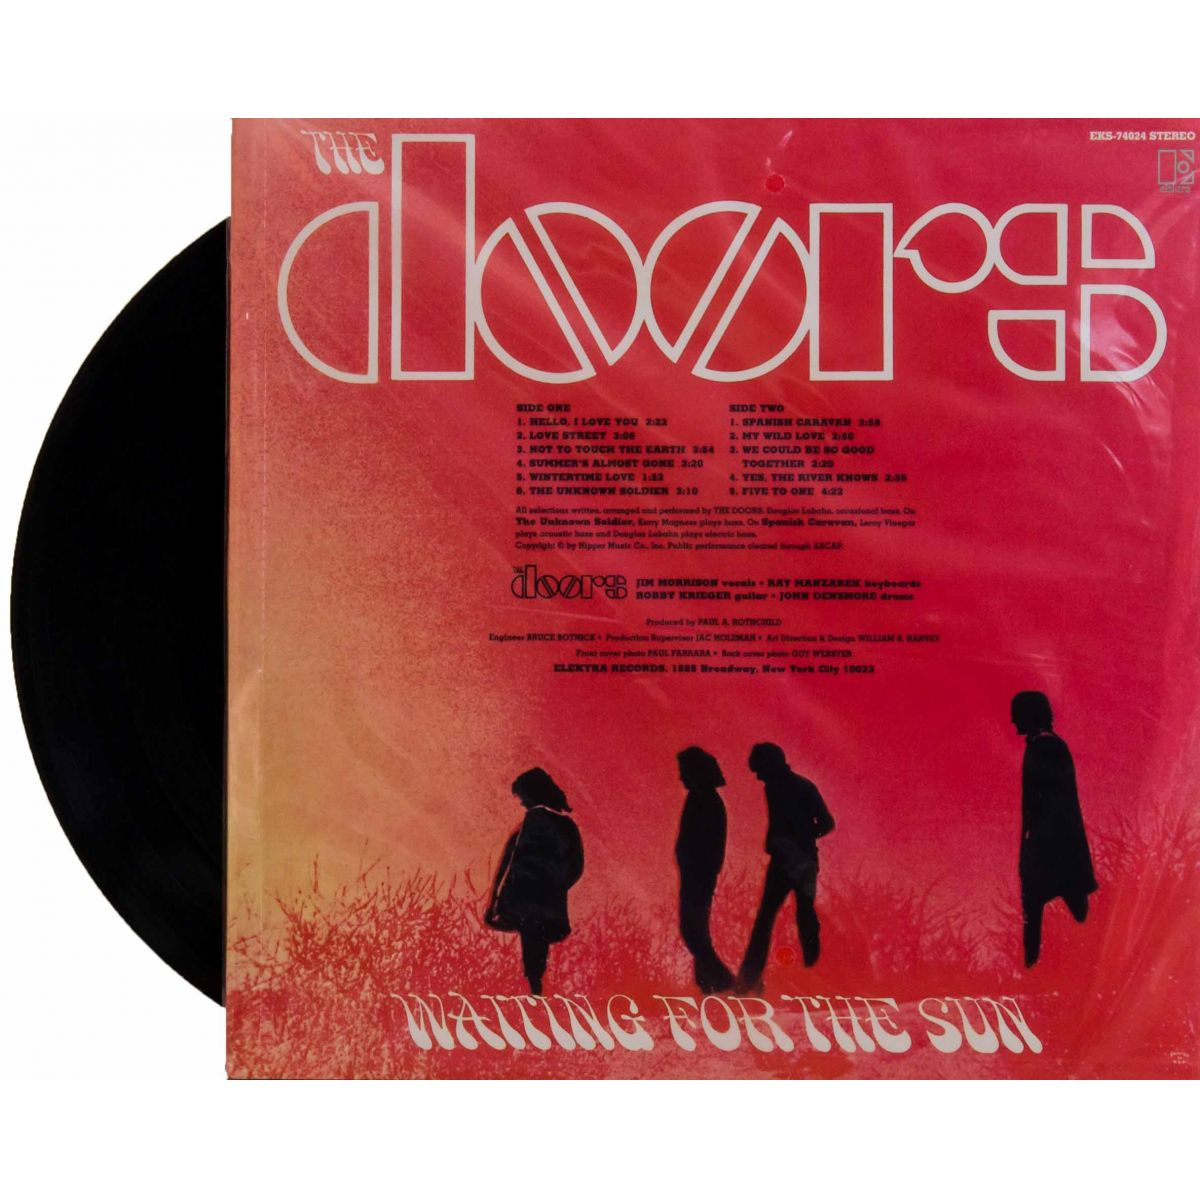 Lp The Doors Waiting For The Sun